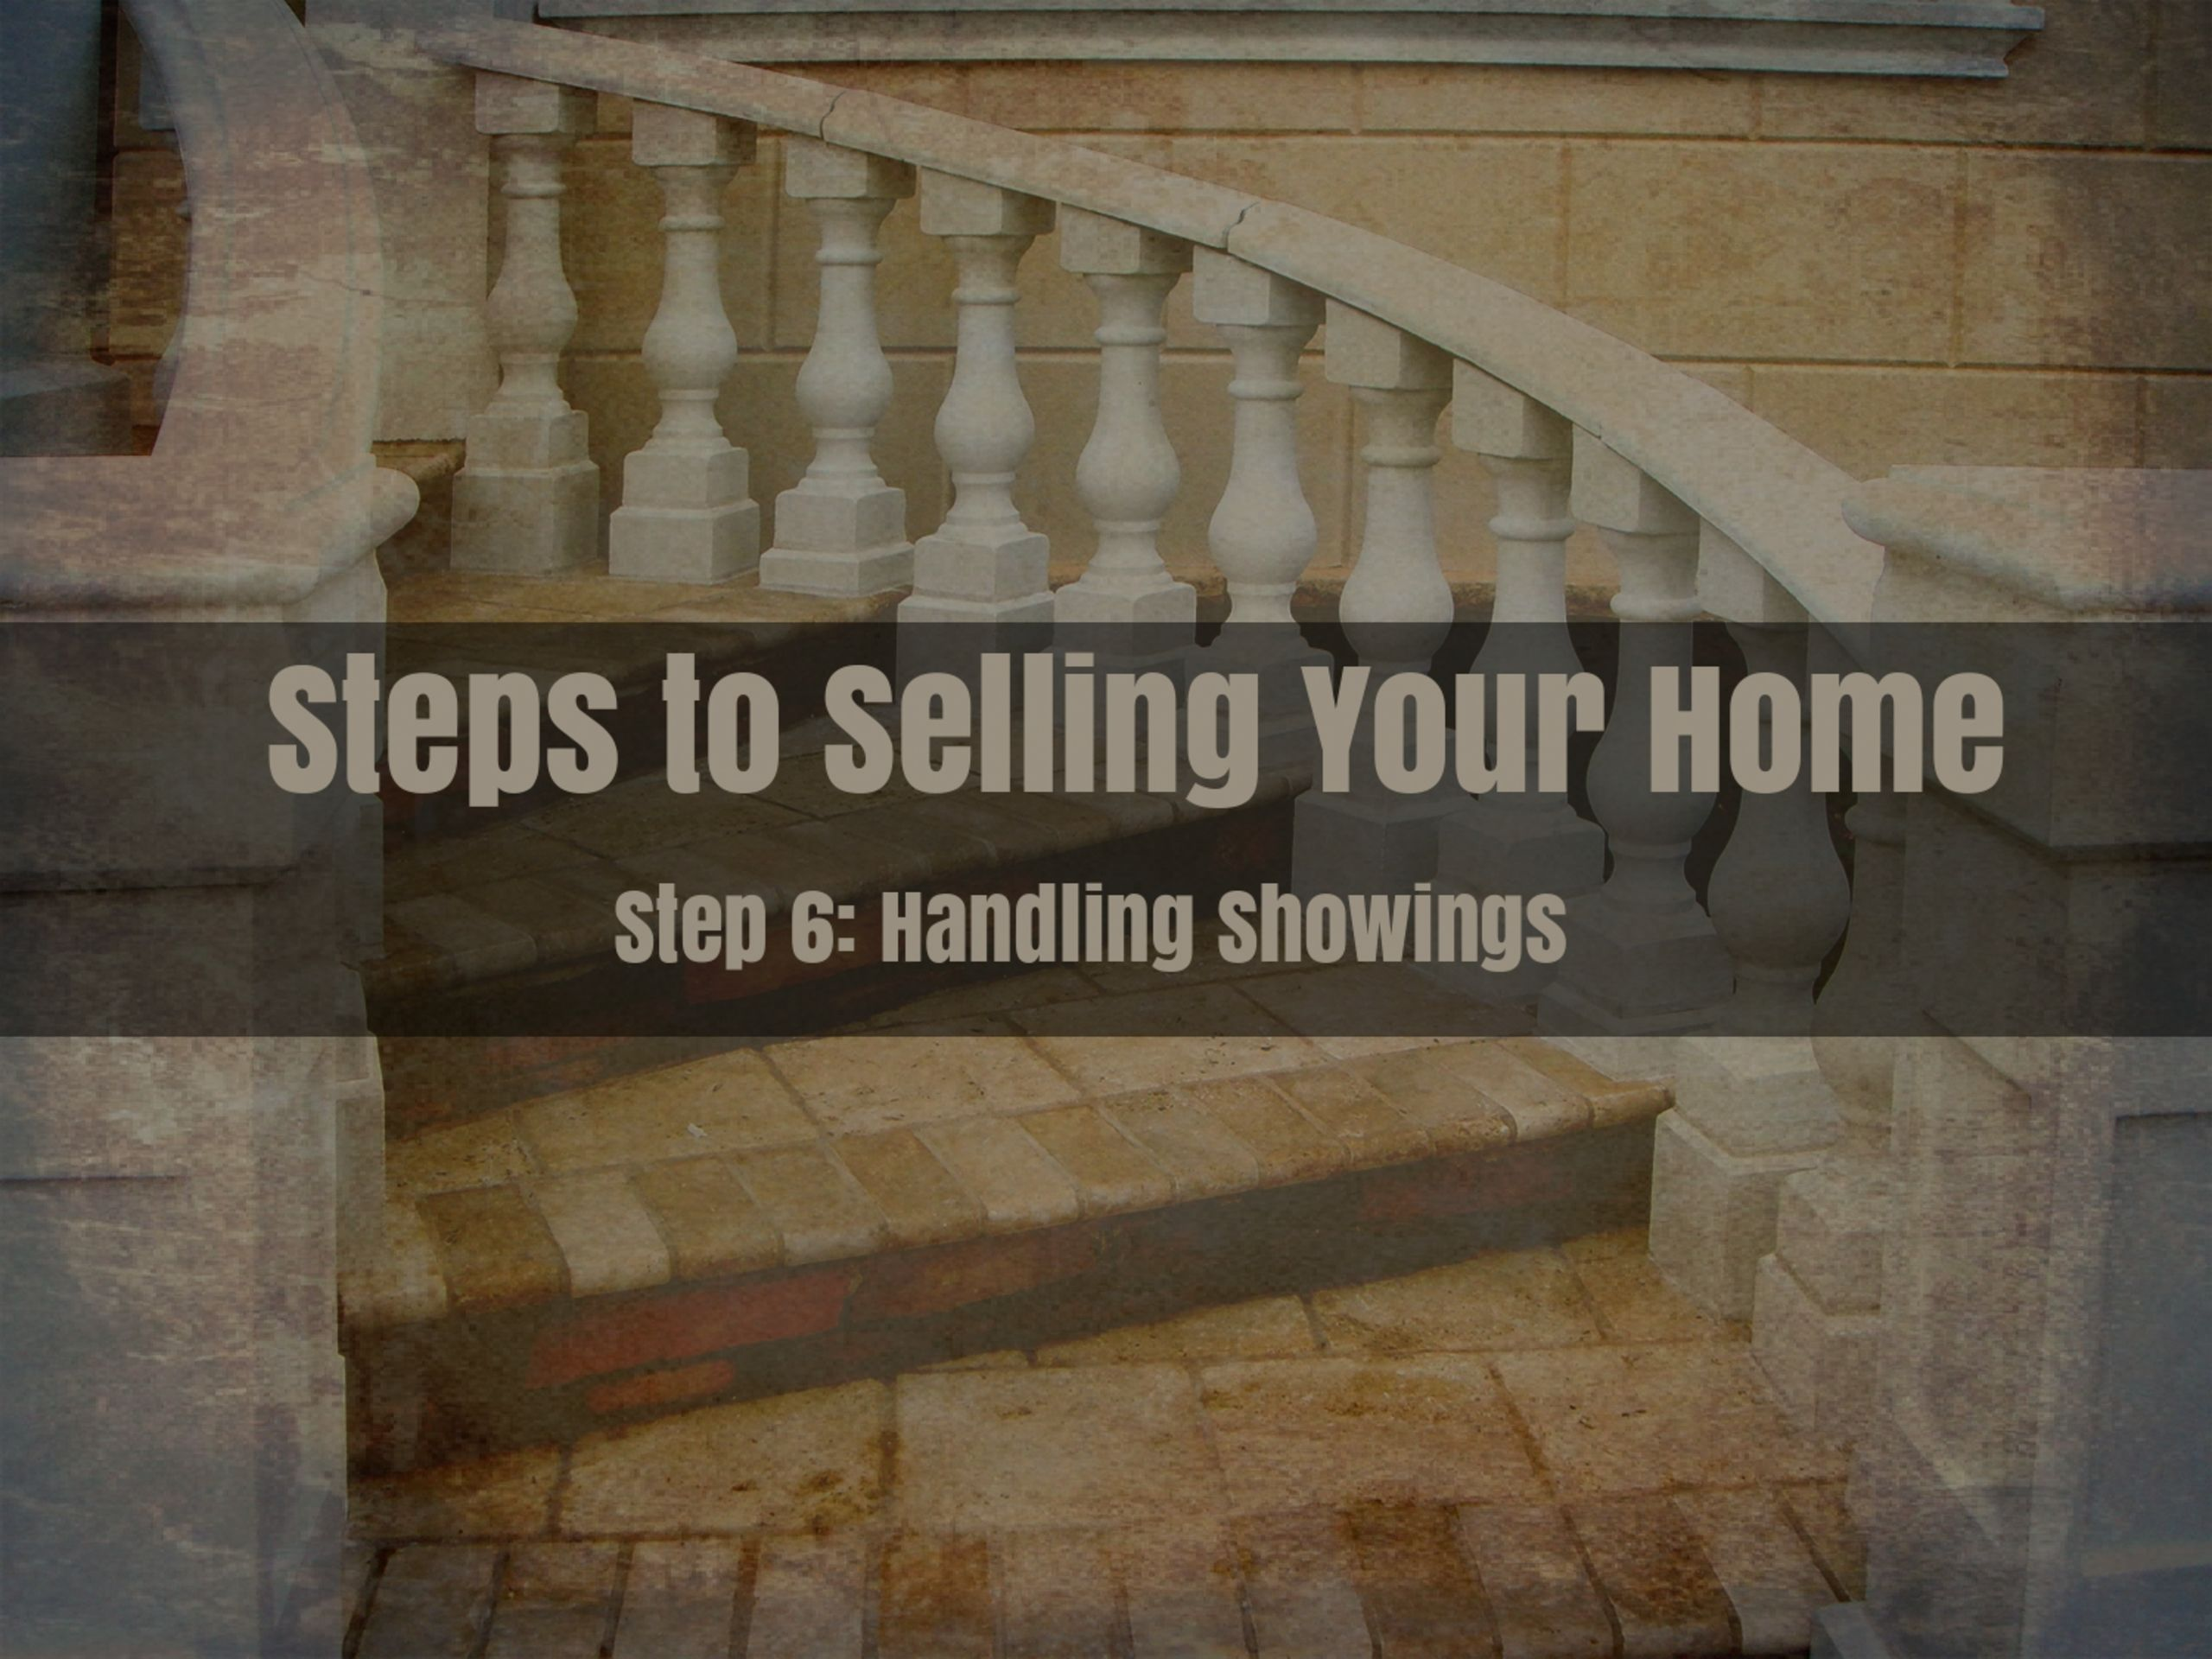 Step 6 – Handling Showings